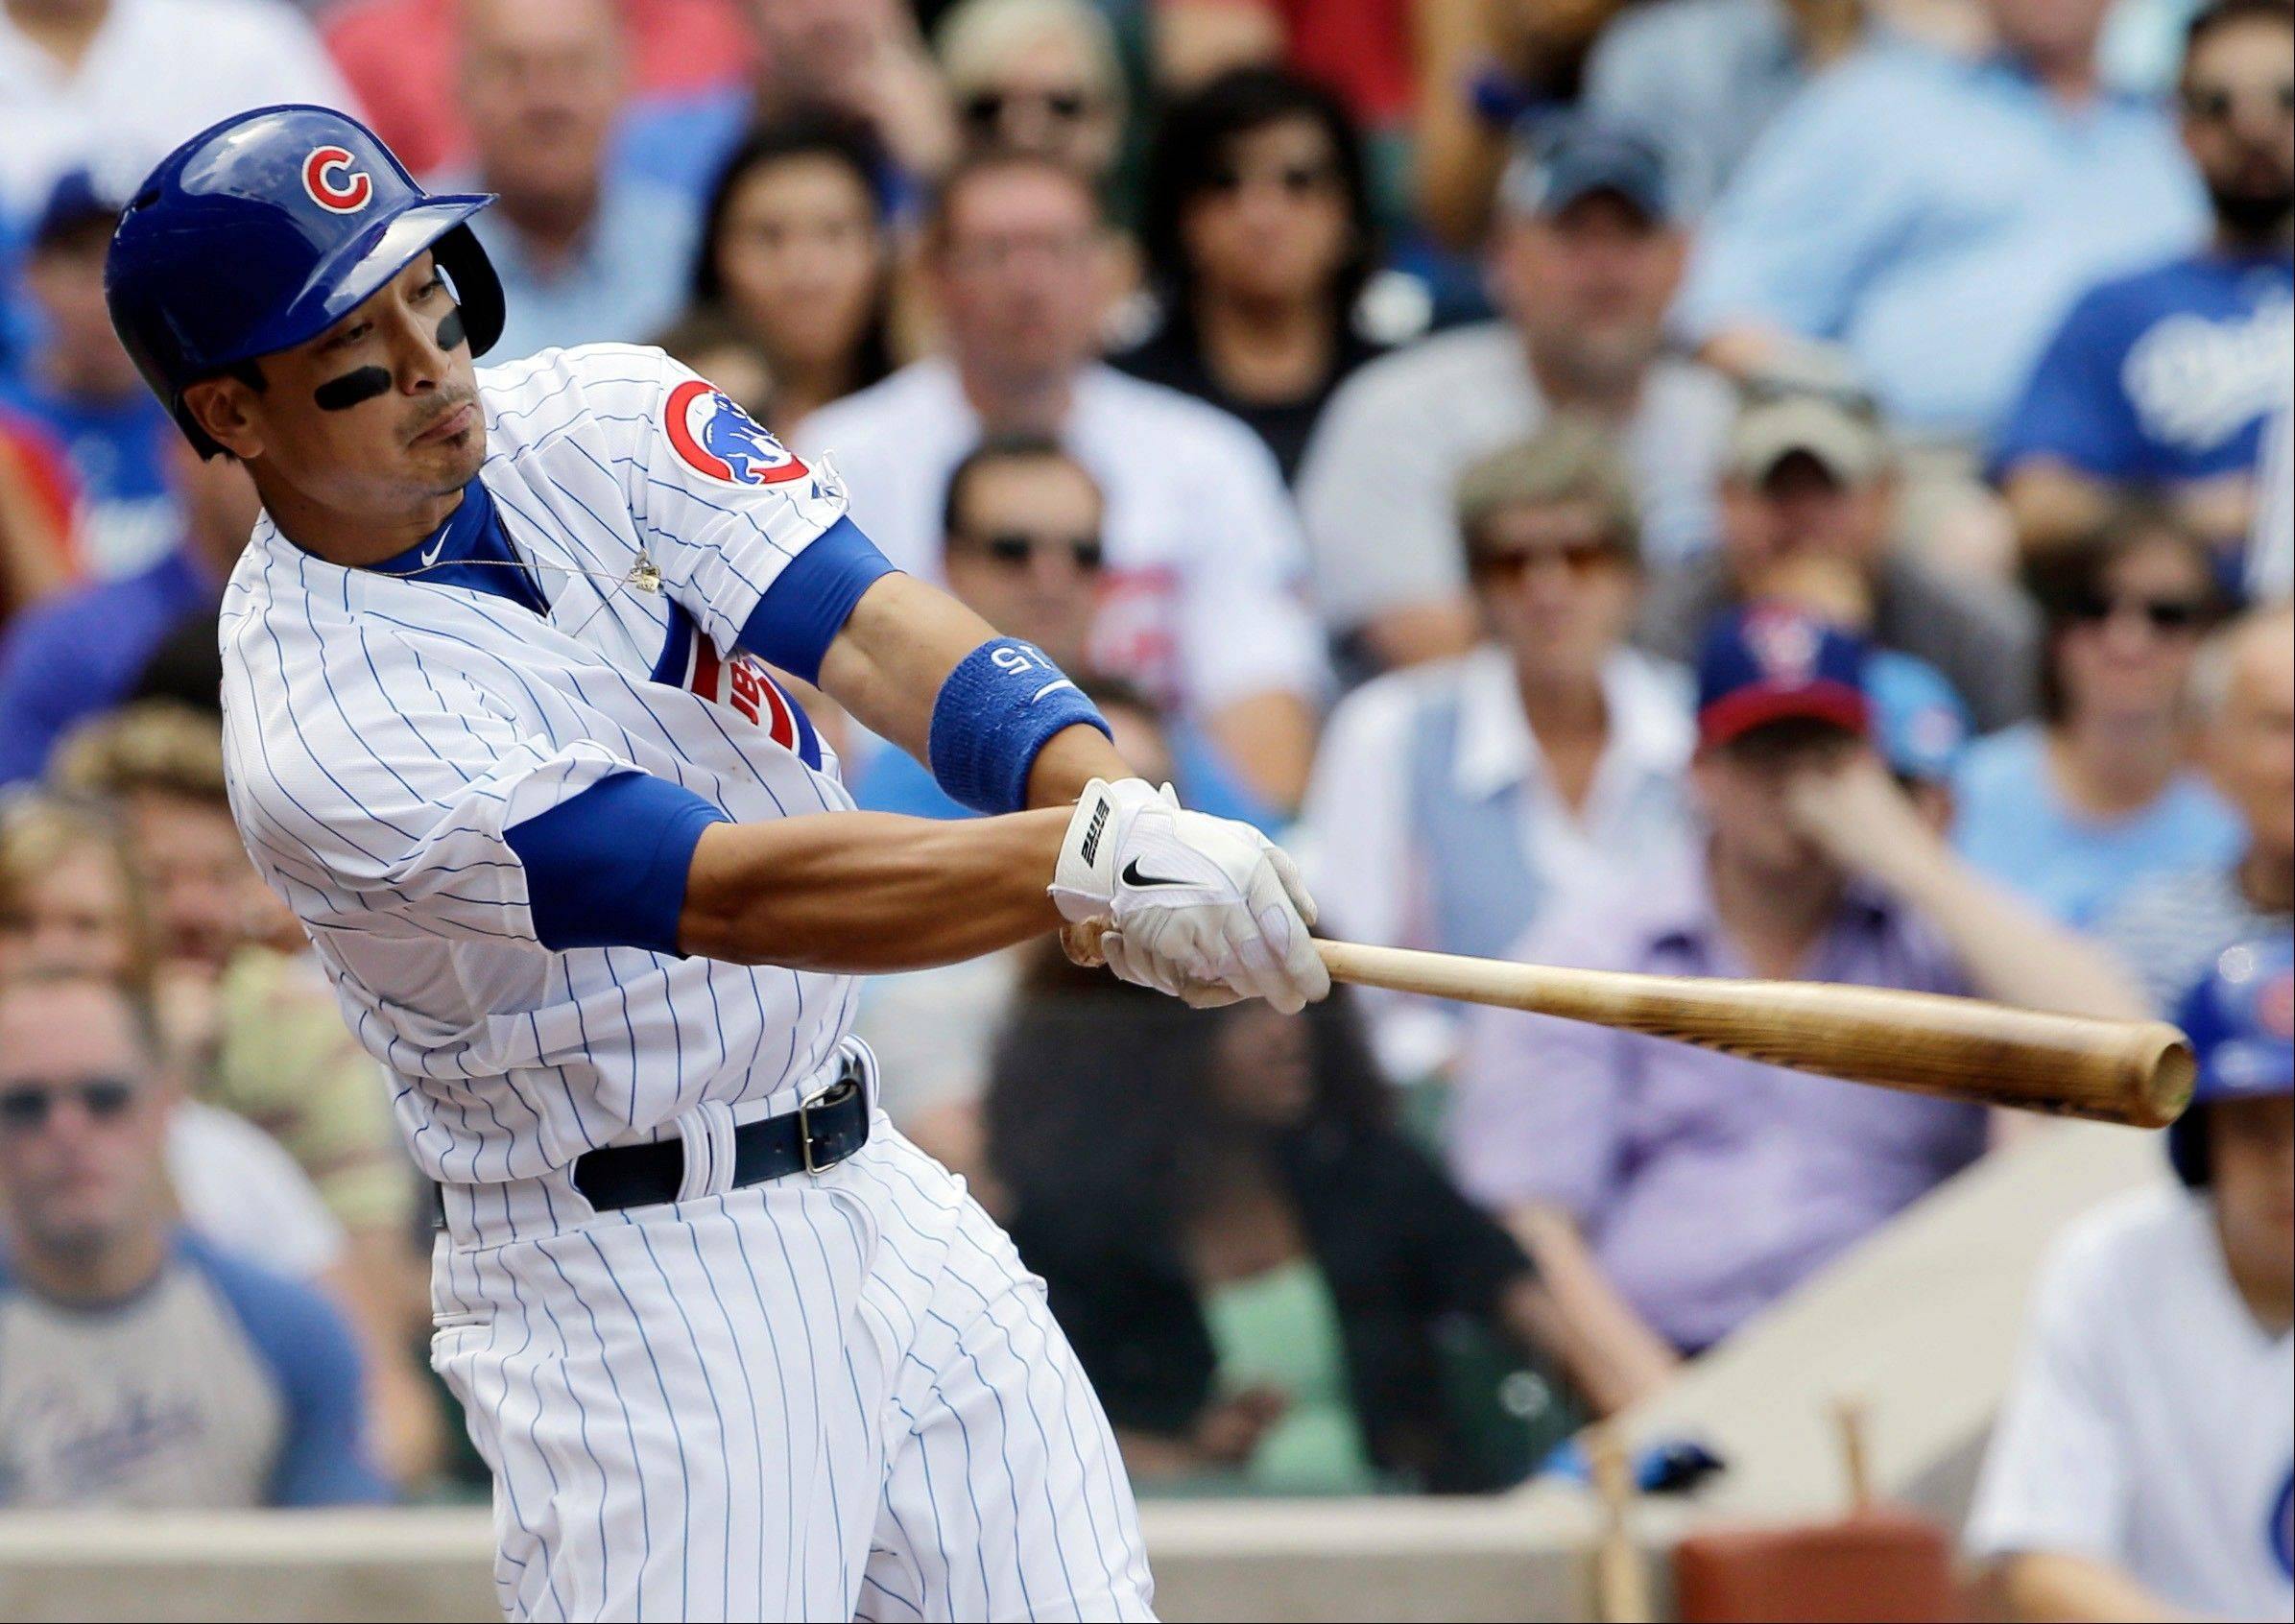 Chicago Cubs' Darwin Barney hits an RBI double against the Los Angeles Dodgers during the second inning of a baseball game on Friday, Aug. 2, 2013, in Chicago.